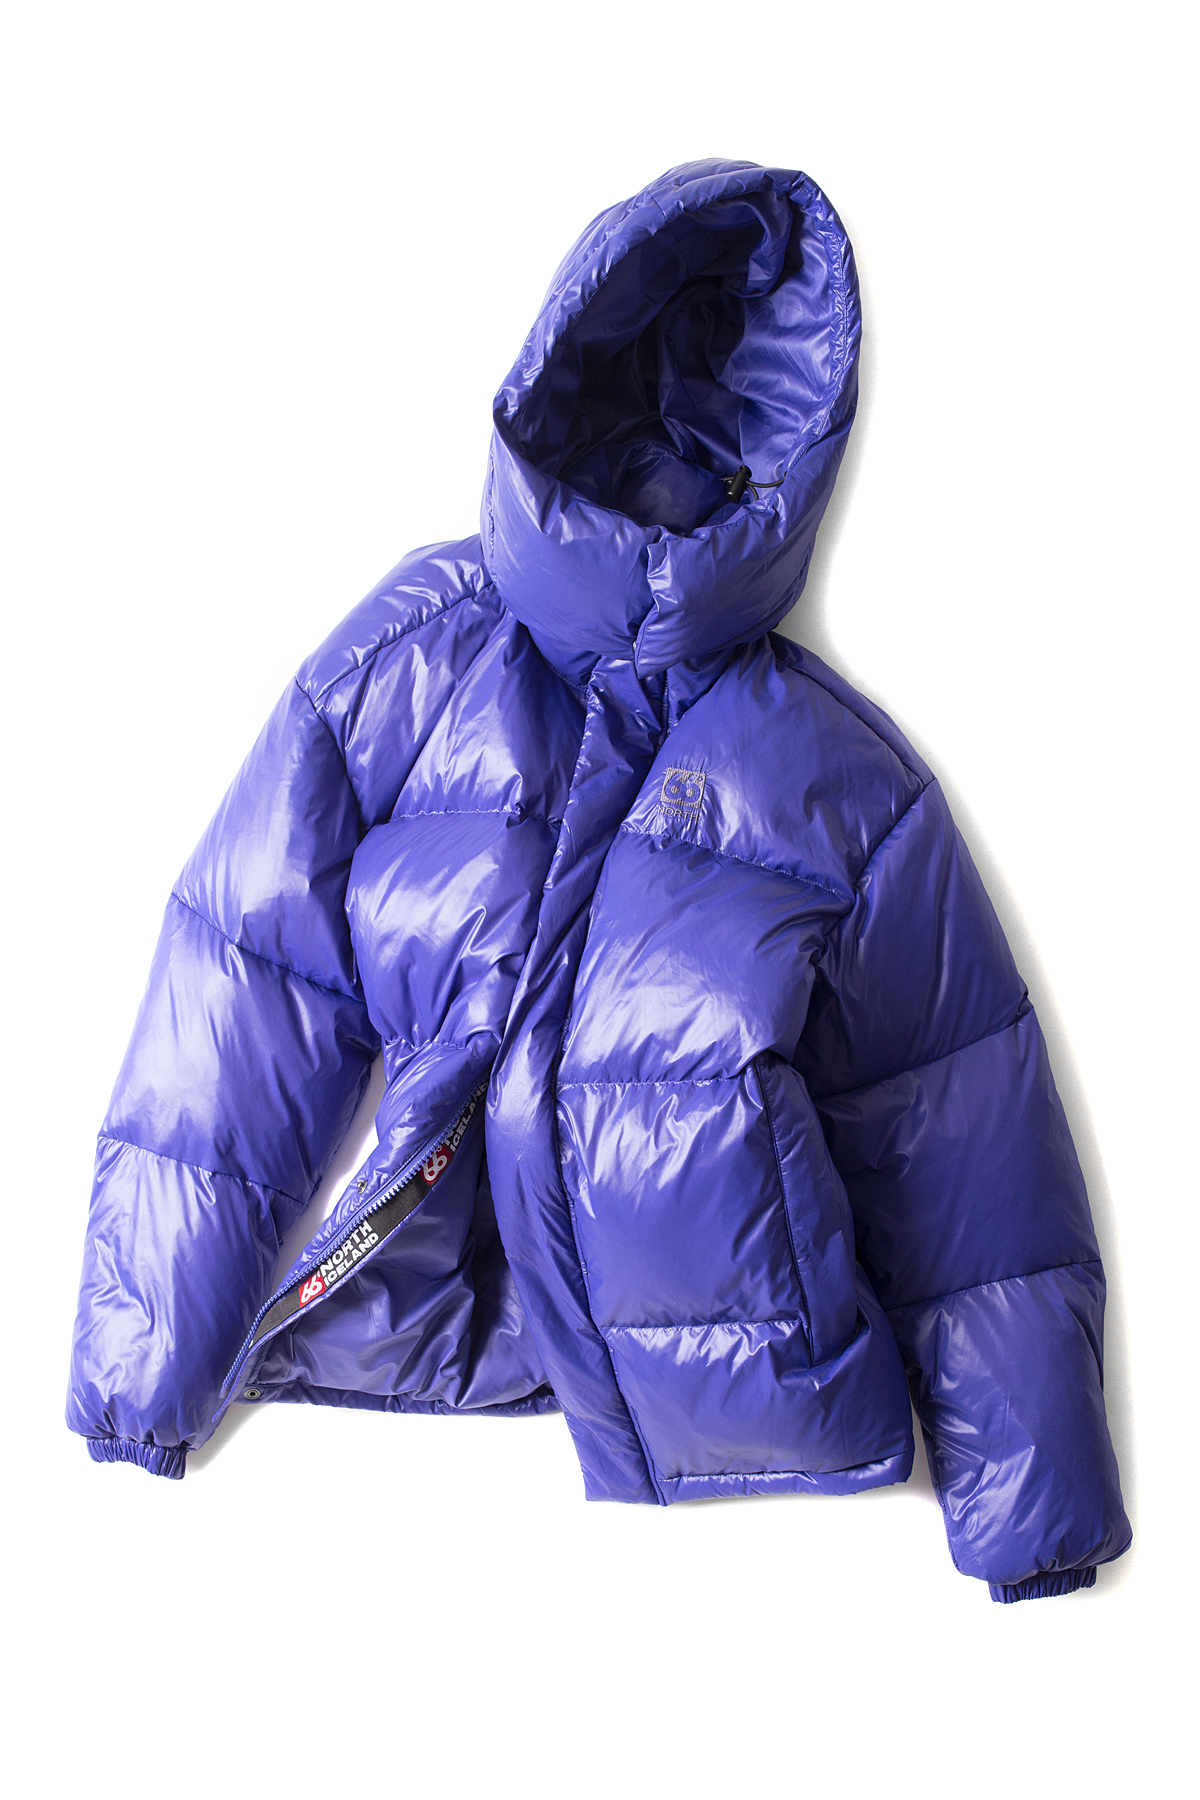 66North : Dyngja Down Jacket (Blue)